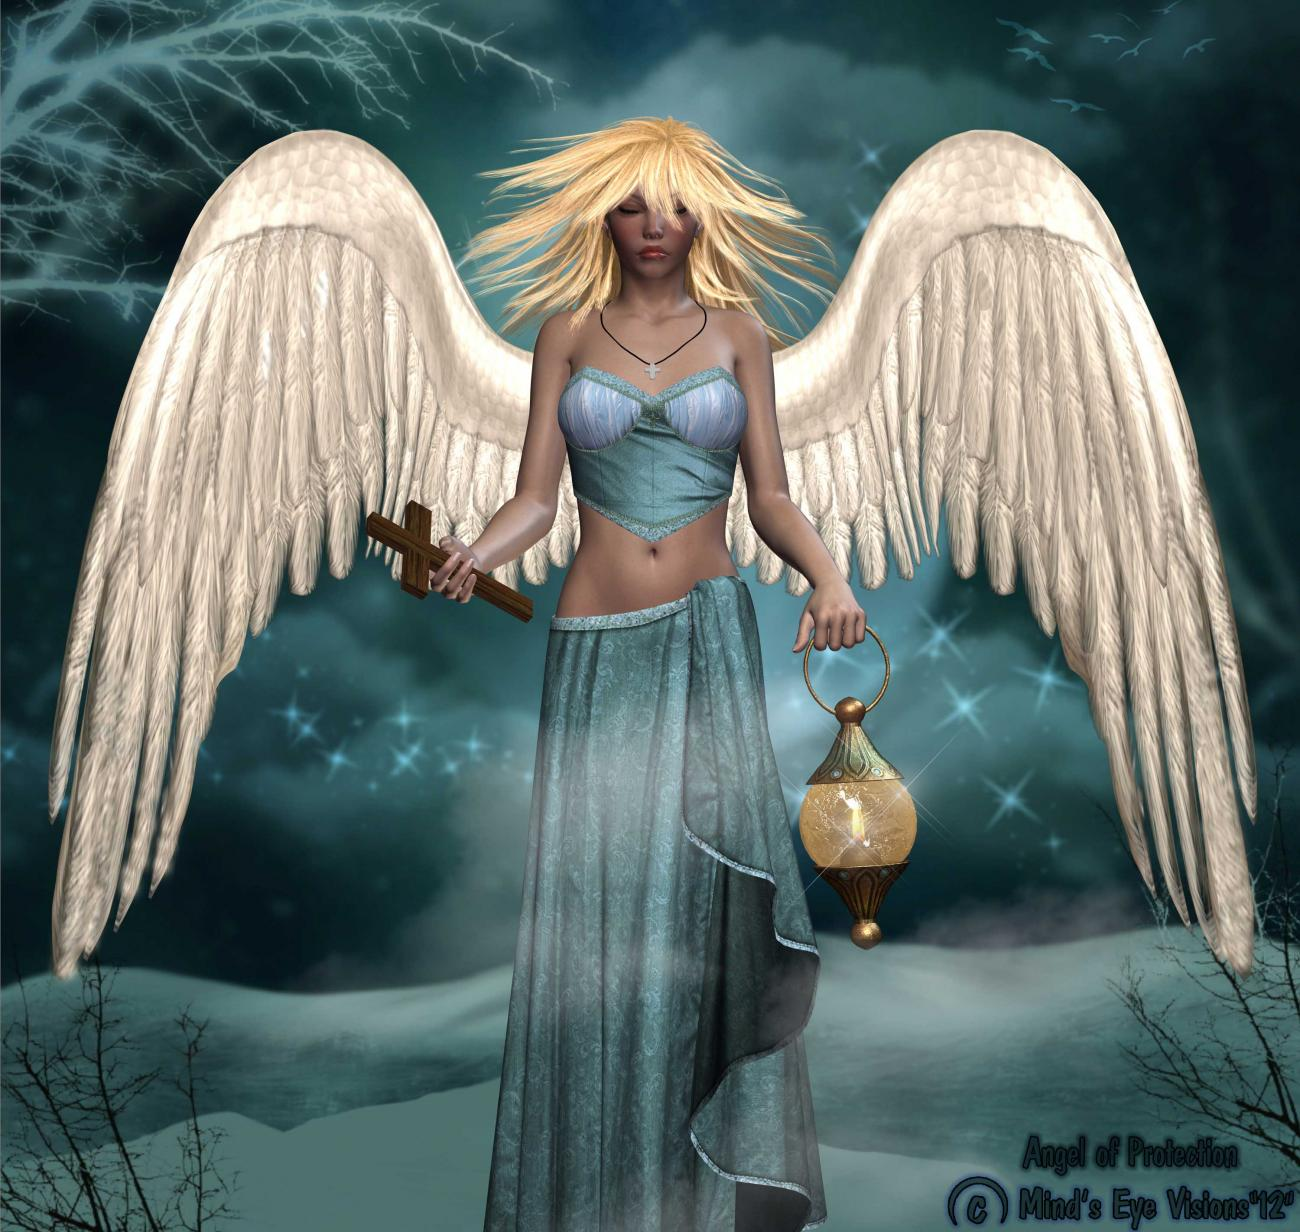 Angel of Protection (for Emma & Stolta) by eekdog